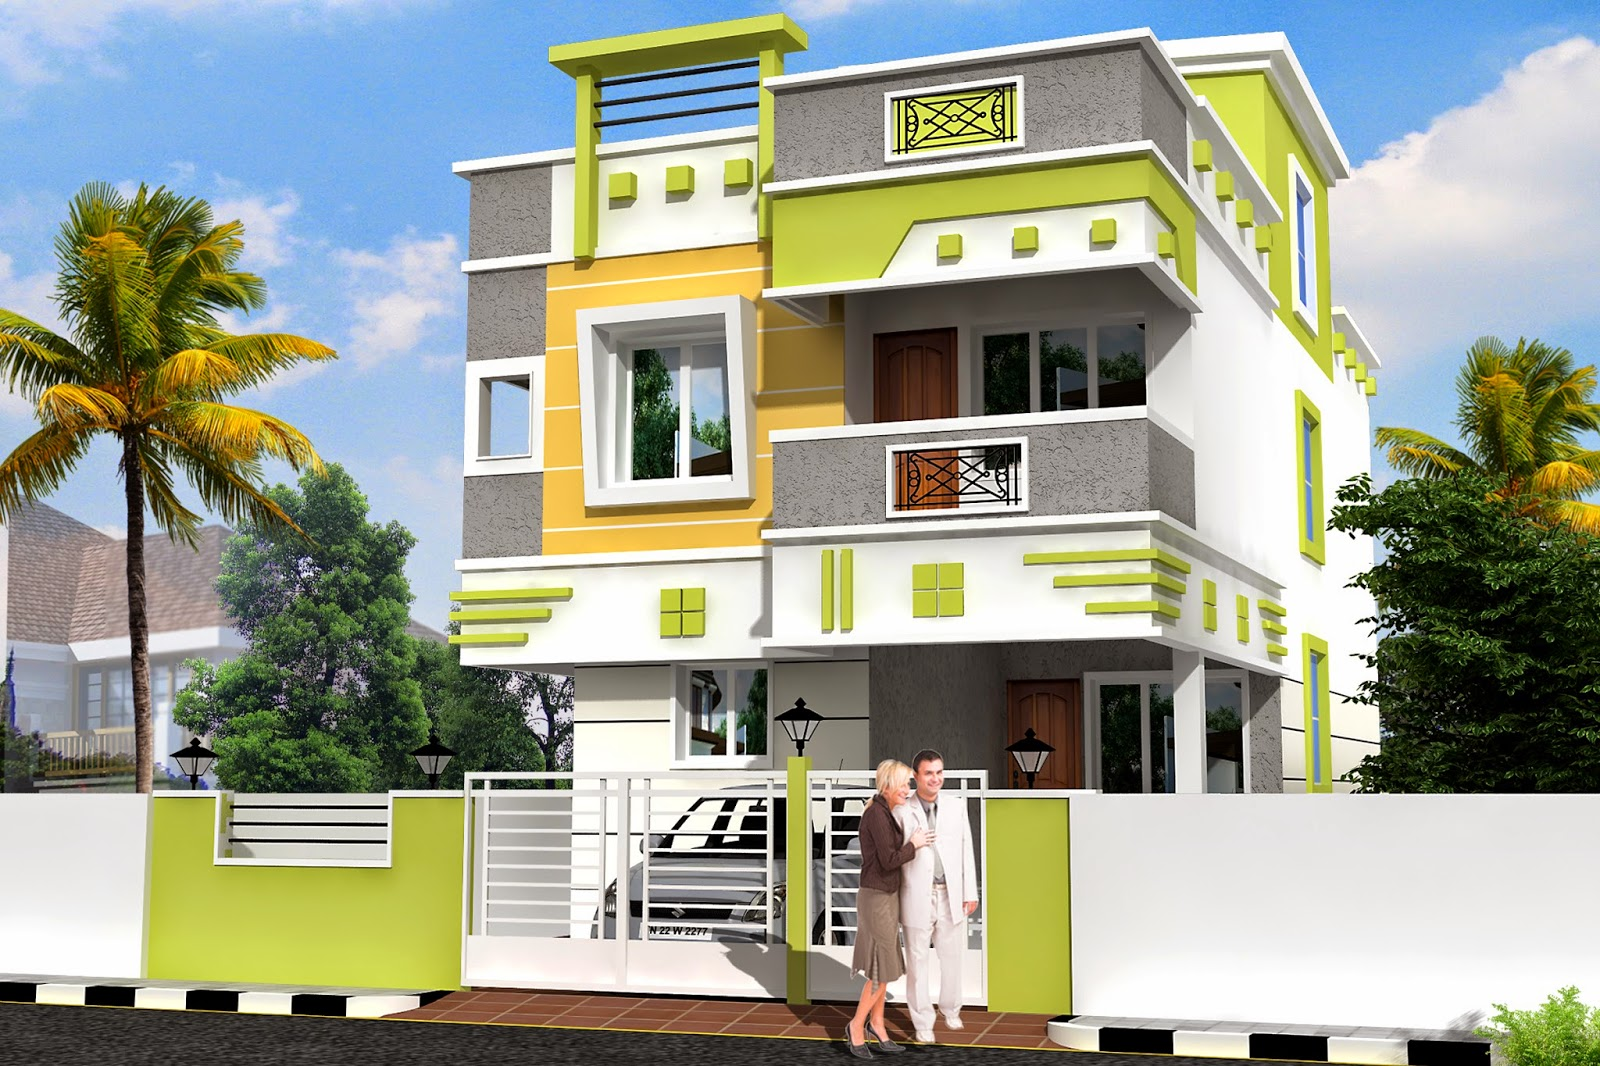 3d residential building elevation joy studio design for Elevation design photos residential houses